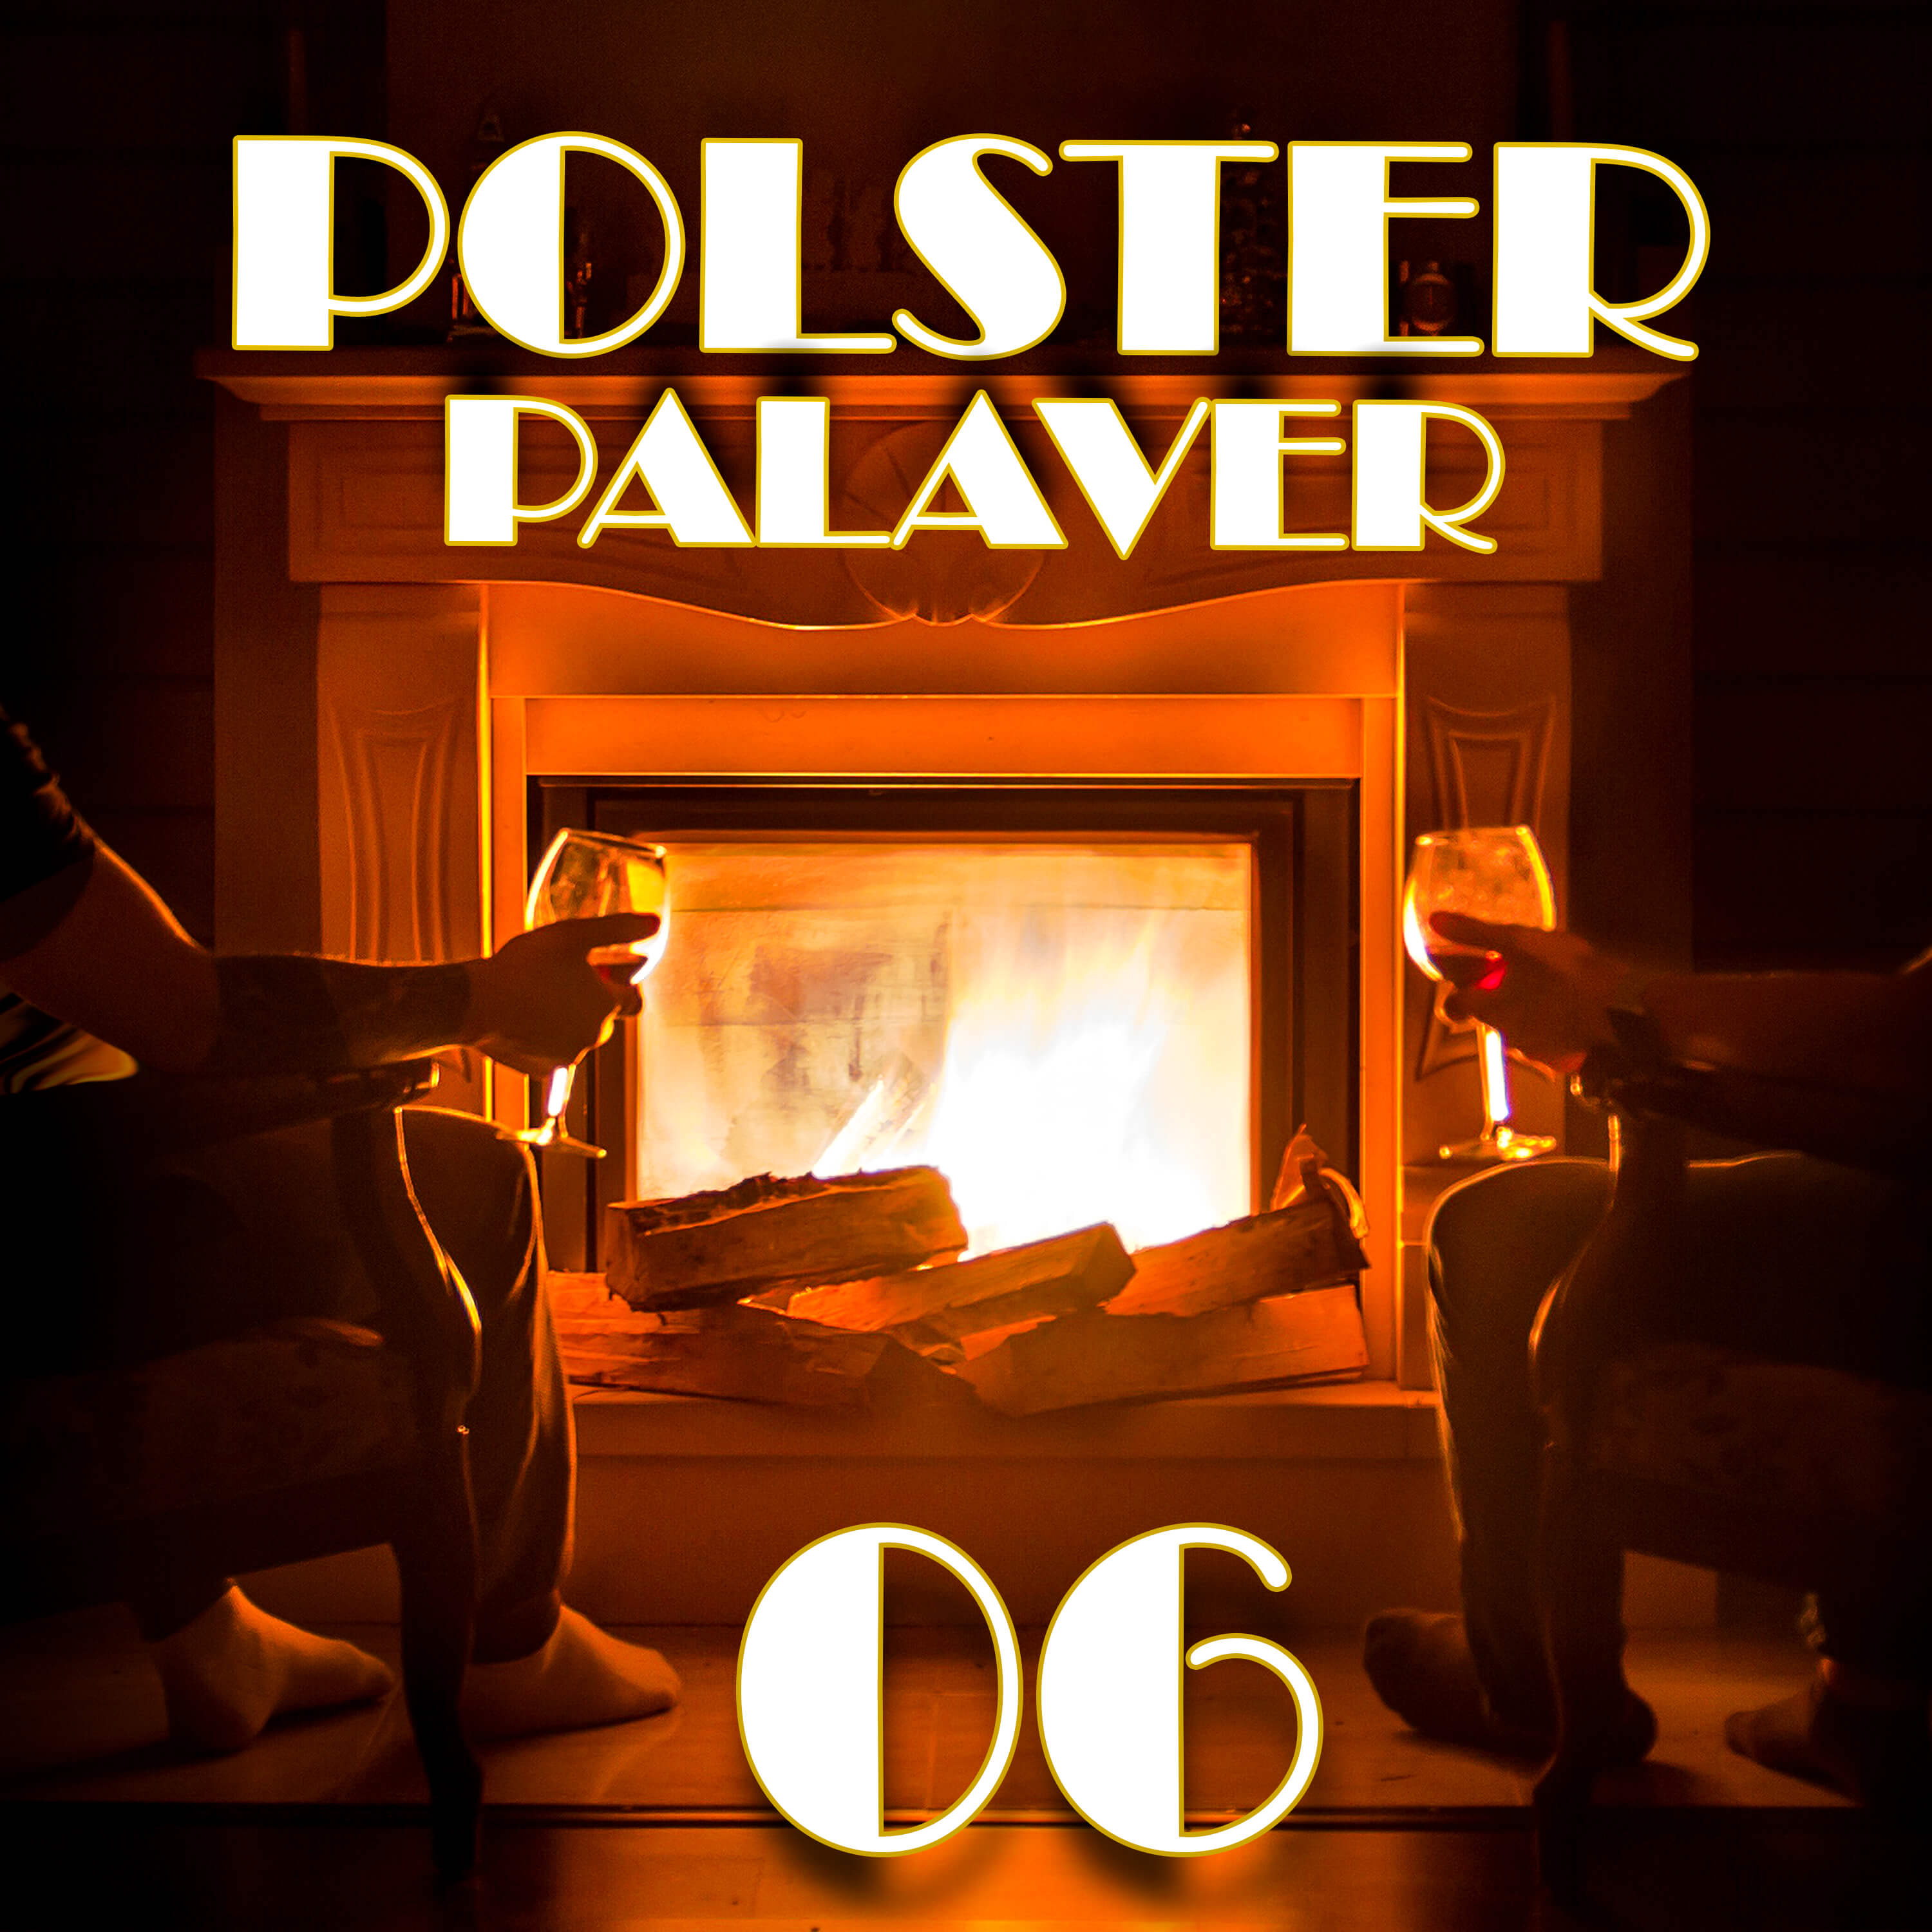 Polster Palaver Cover 06 Compressed